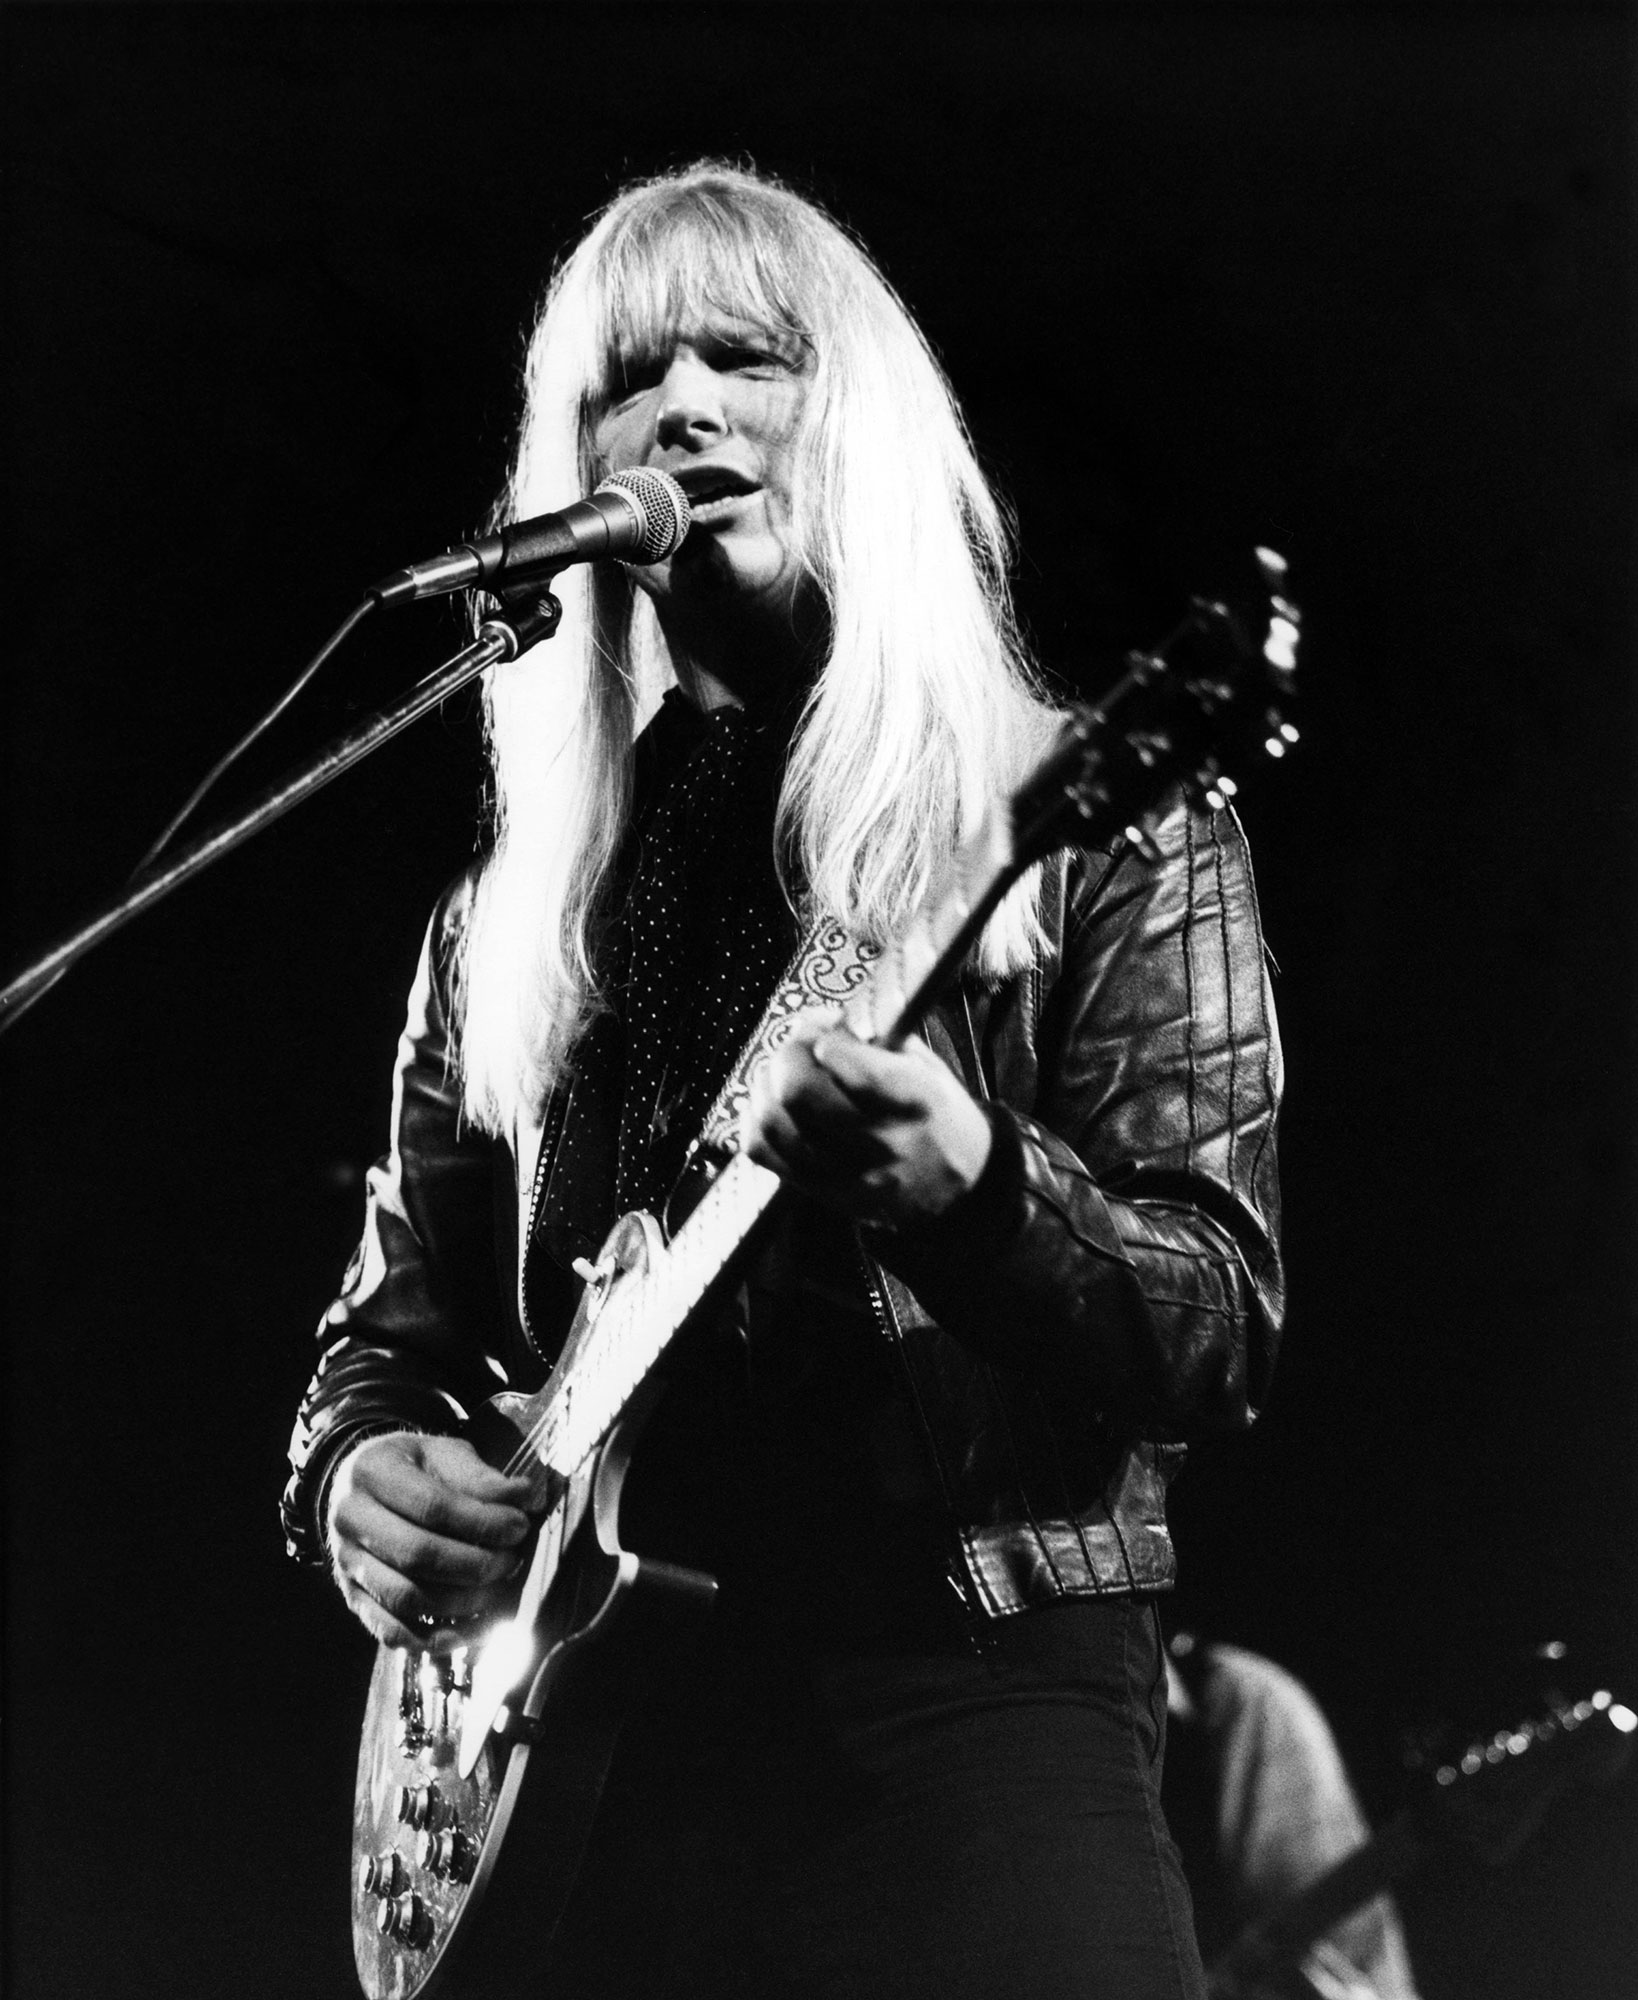 Copy of Larry Norman (1947-2008)